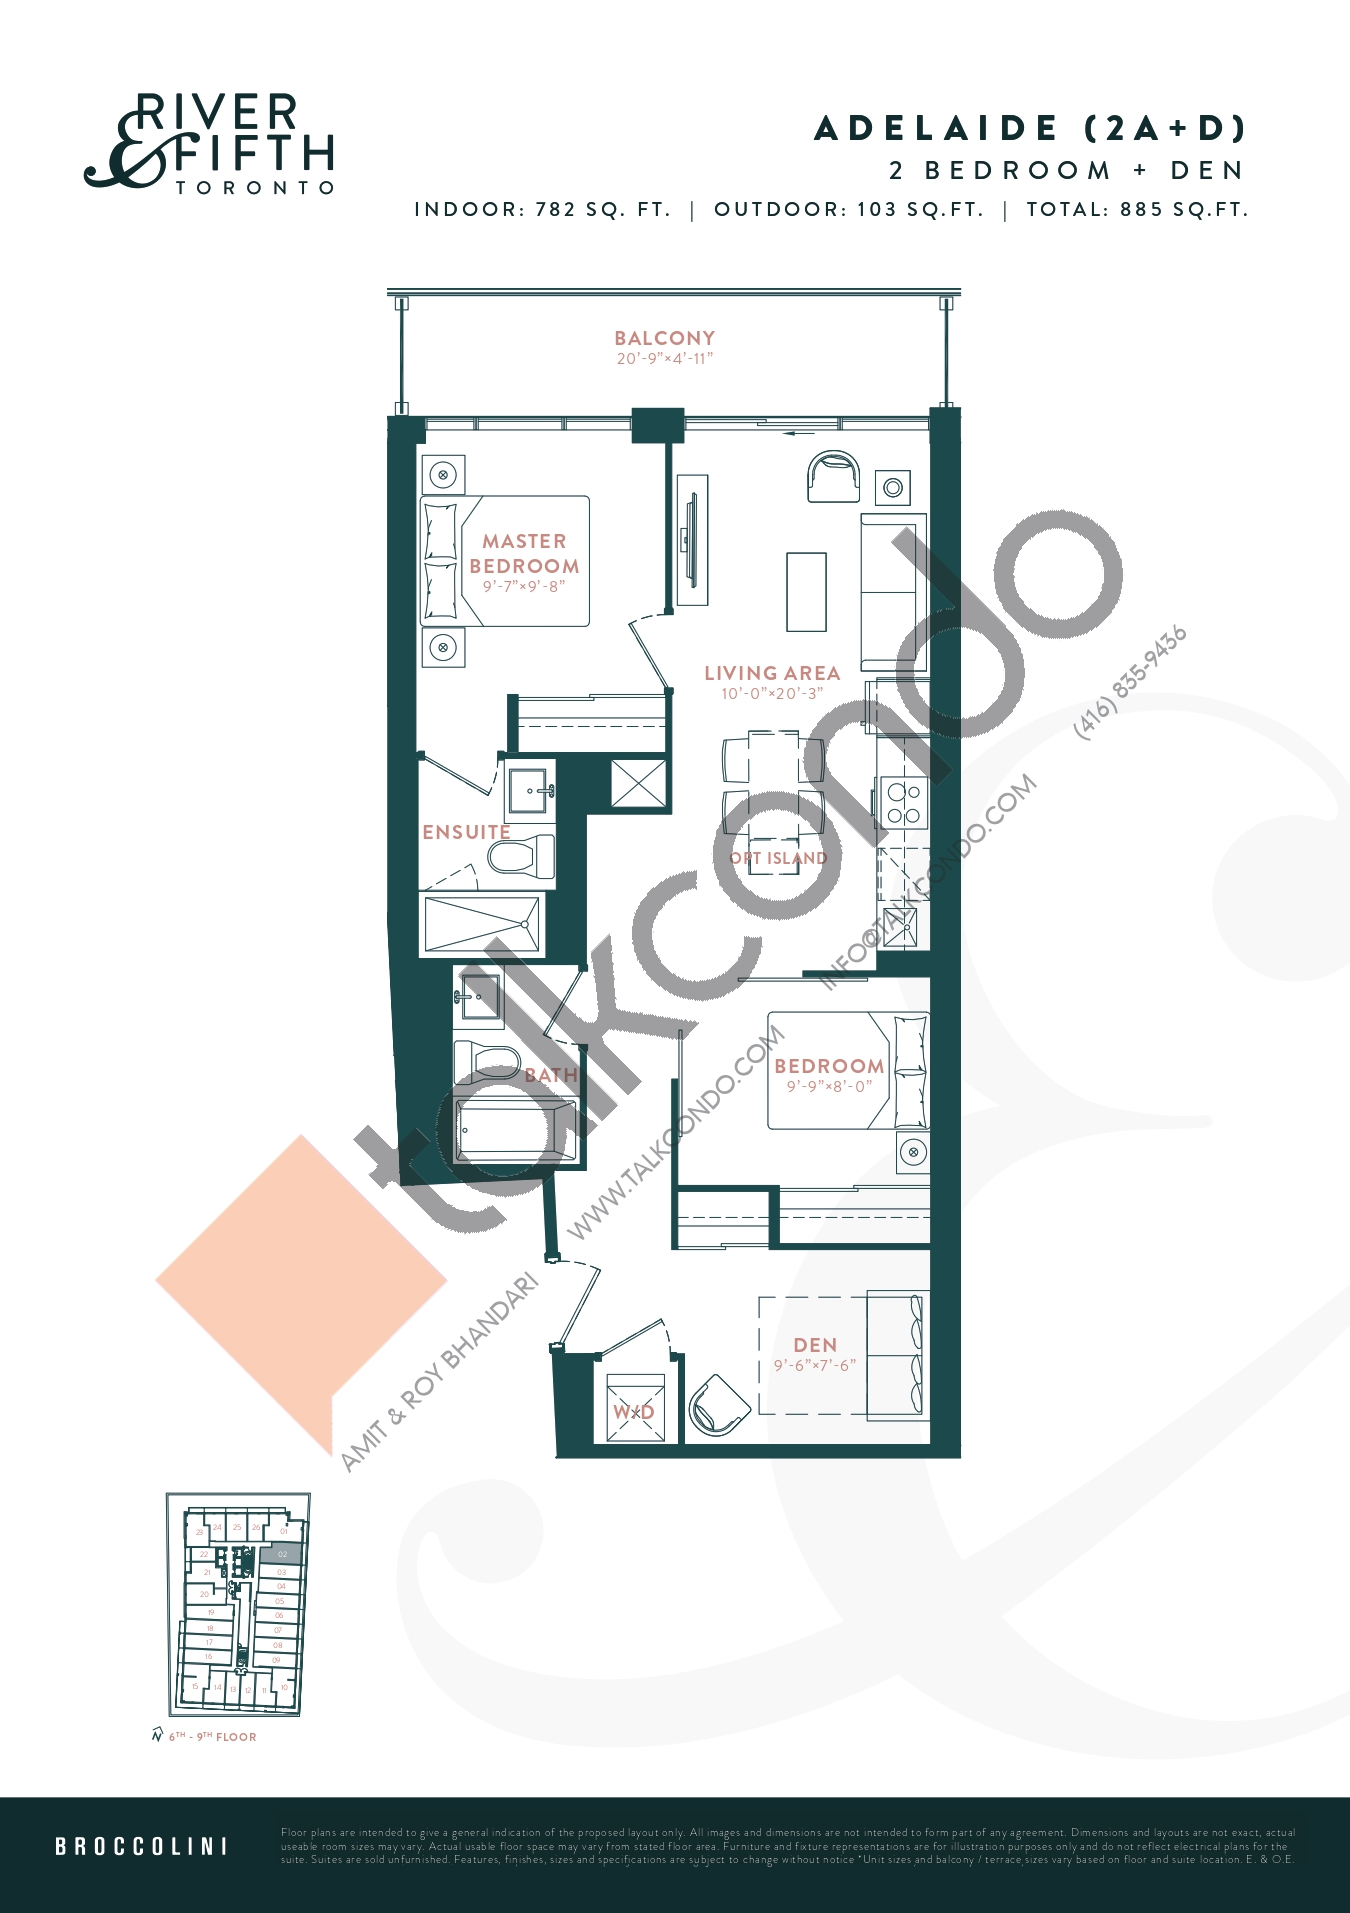 Adelaide (2A+D) Floor Plan at River & Fifth Condos - 782 sq.ft